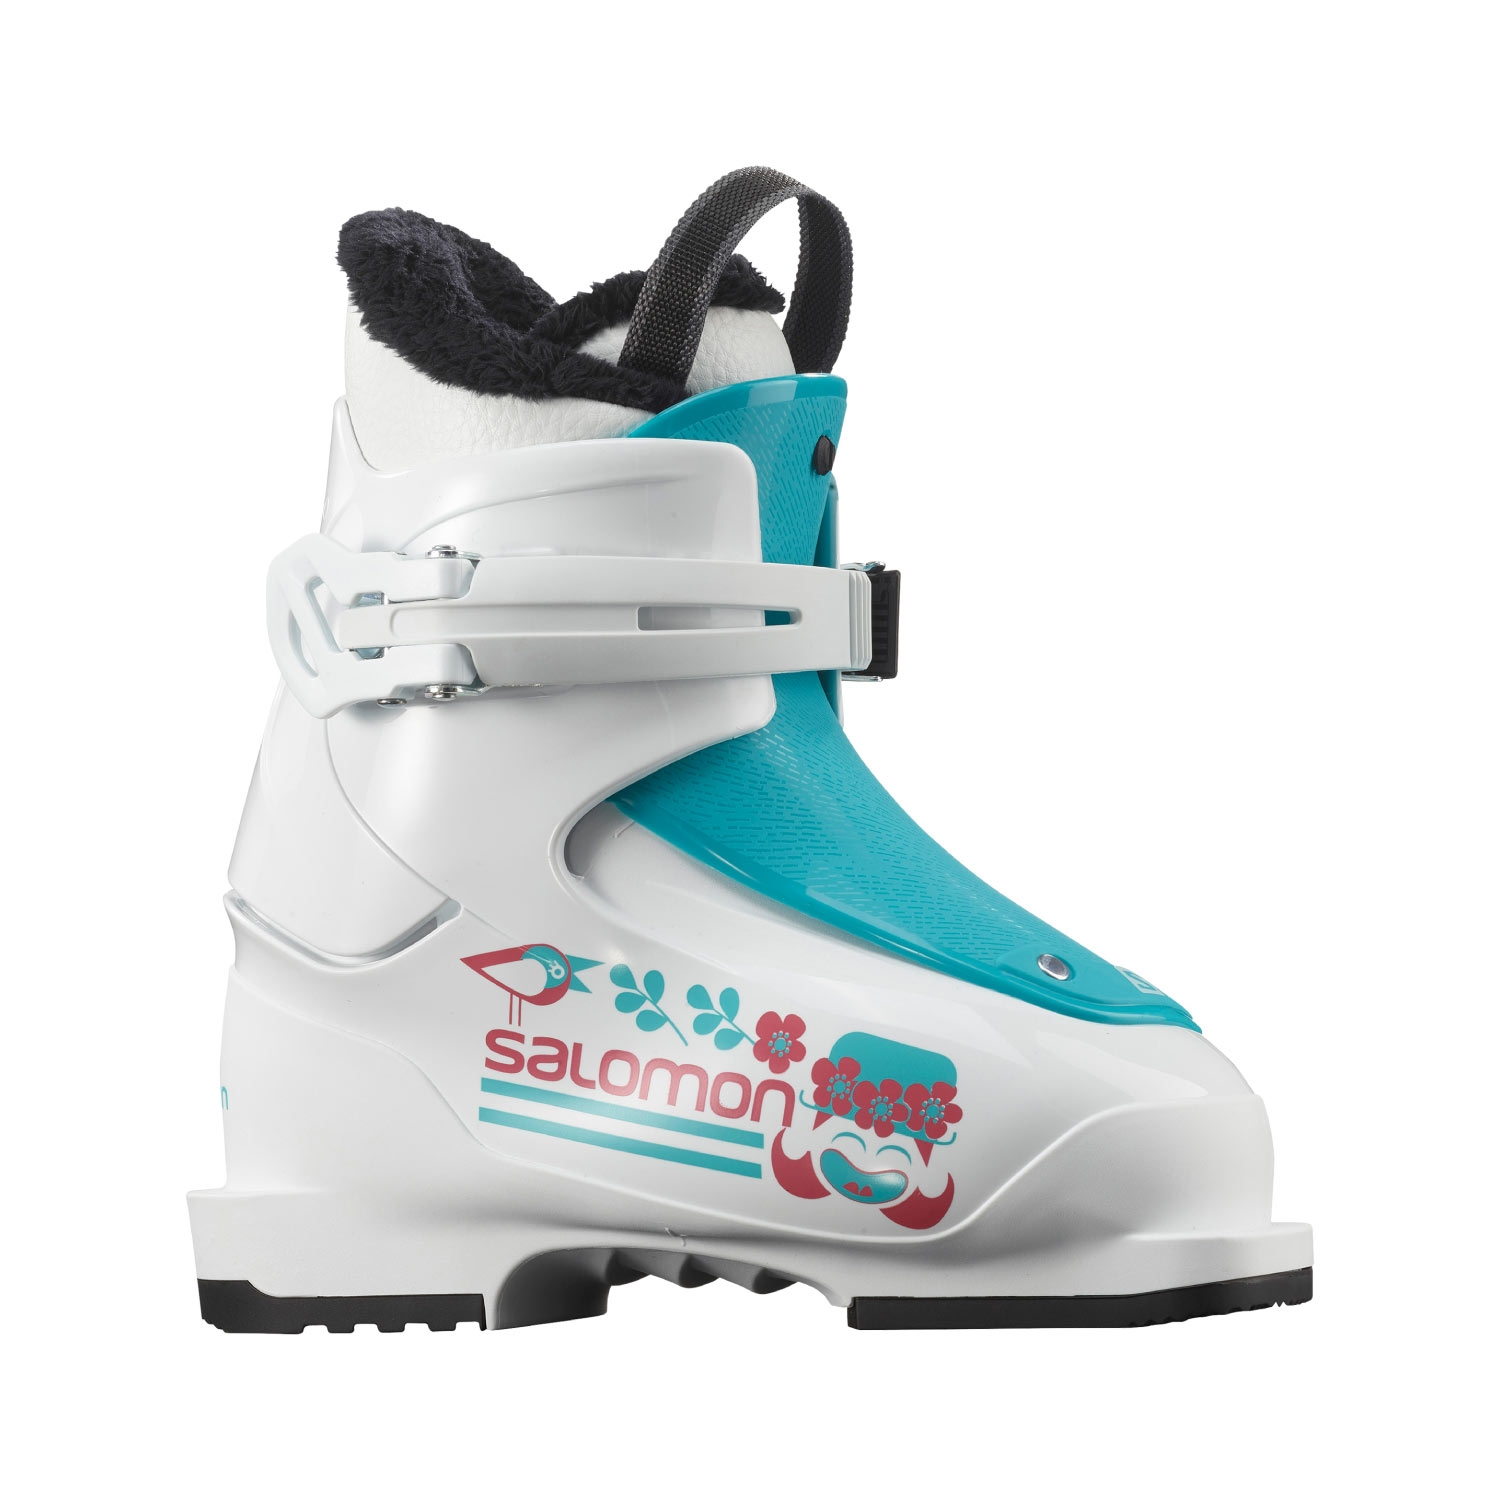 Salomon T1 Girly Ski Boots White/Scuba Blue 2021